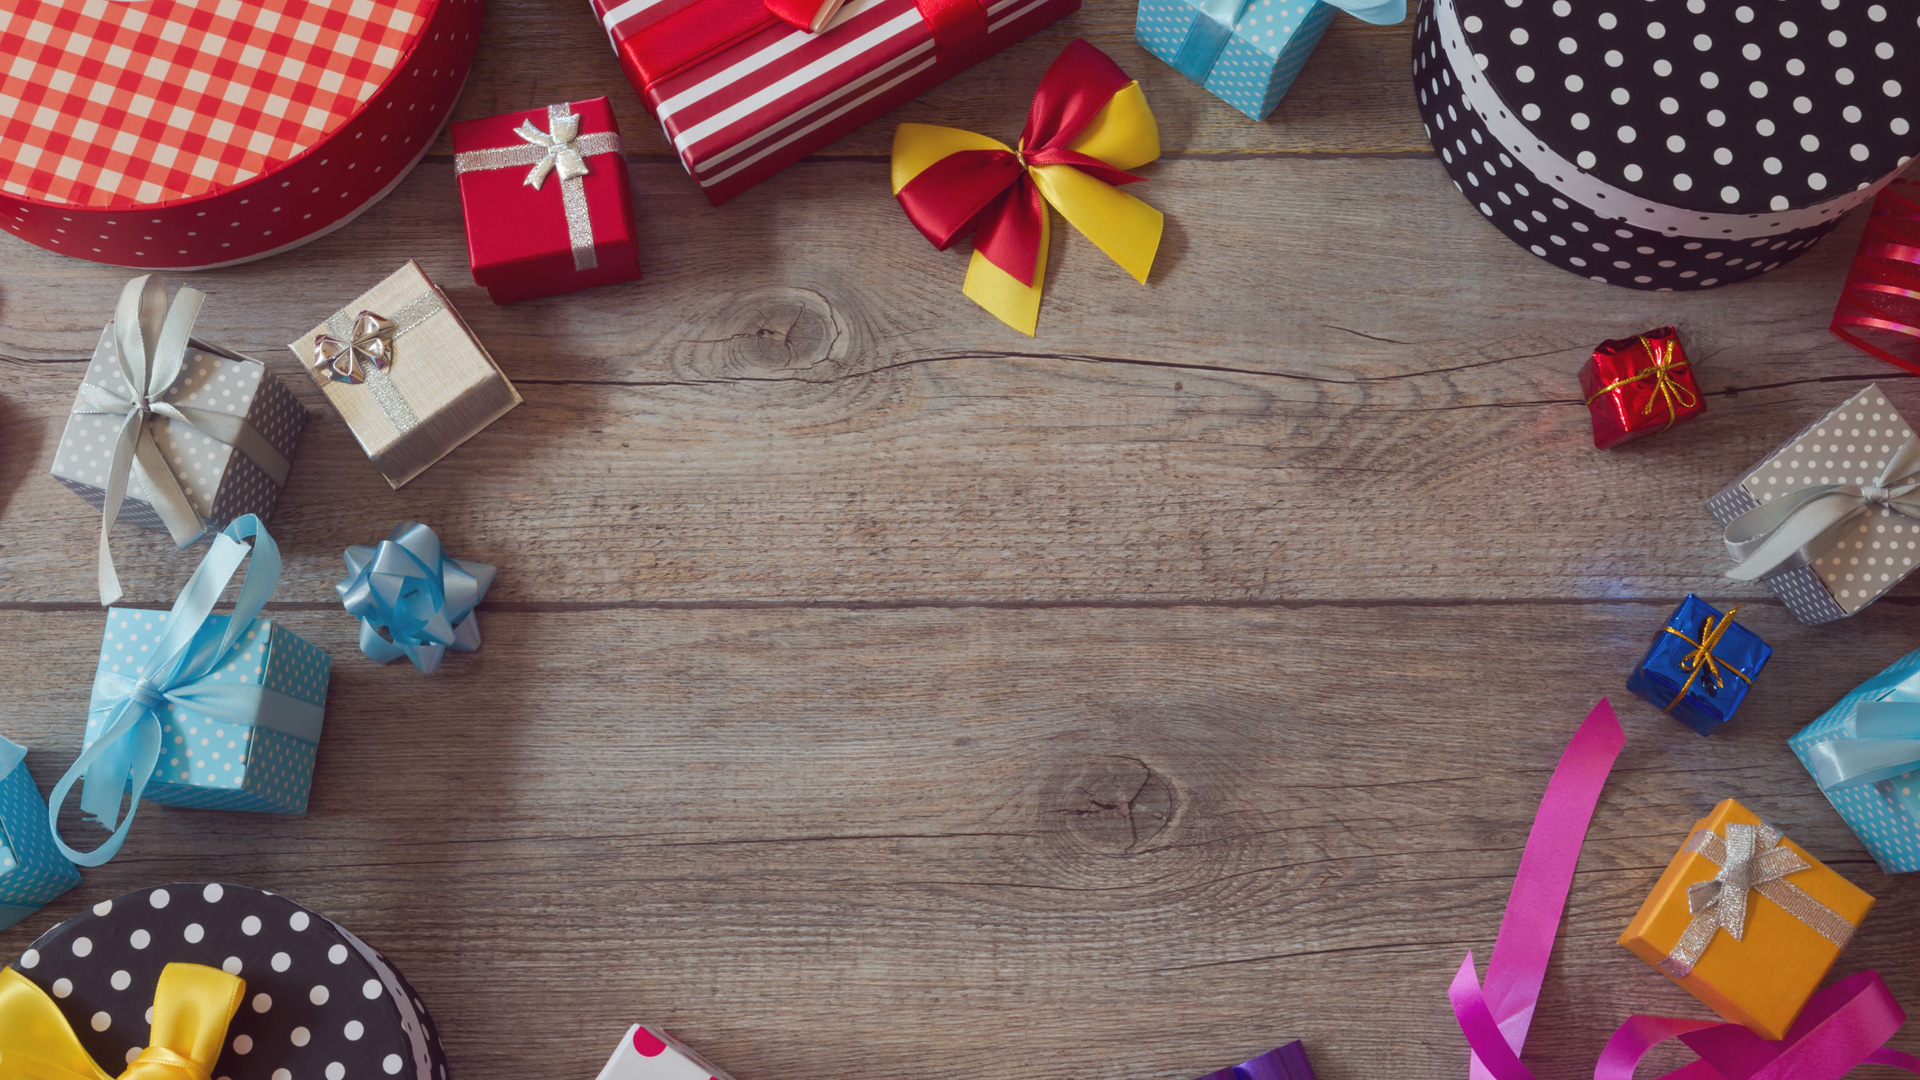 Sales and warehousing prediction for the gifts shop